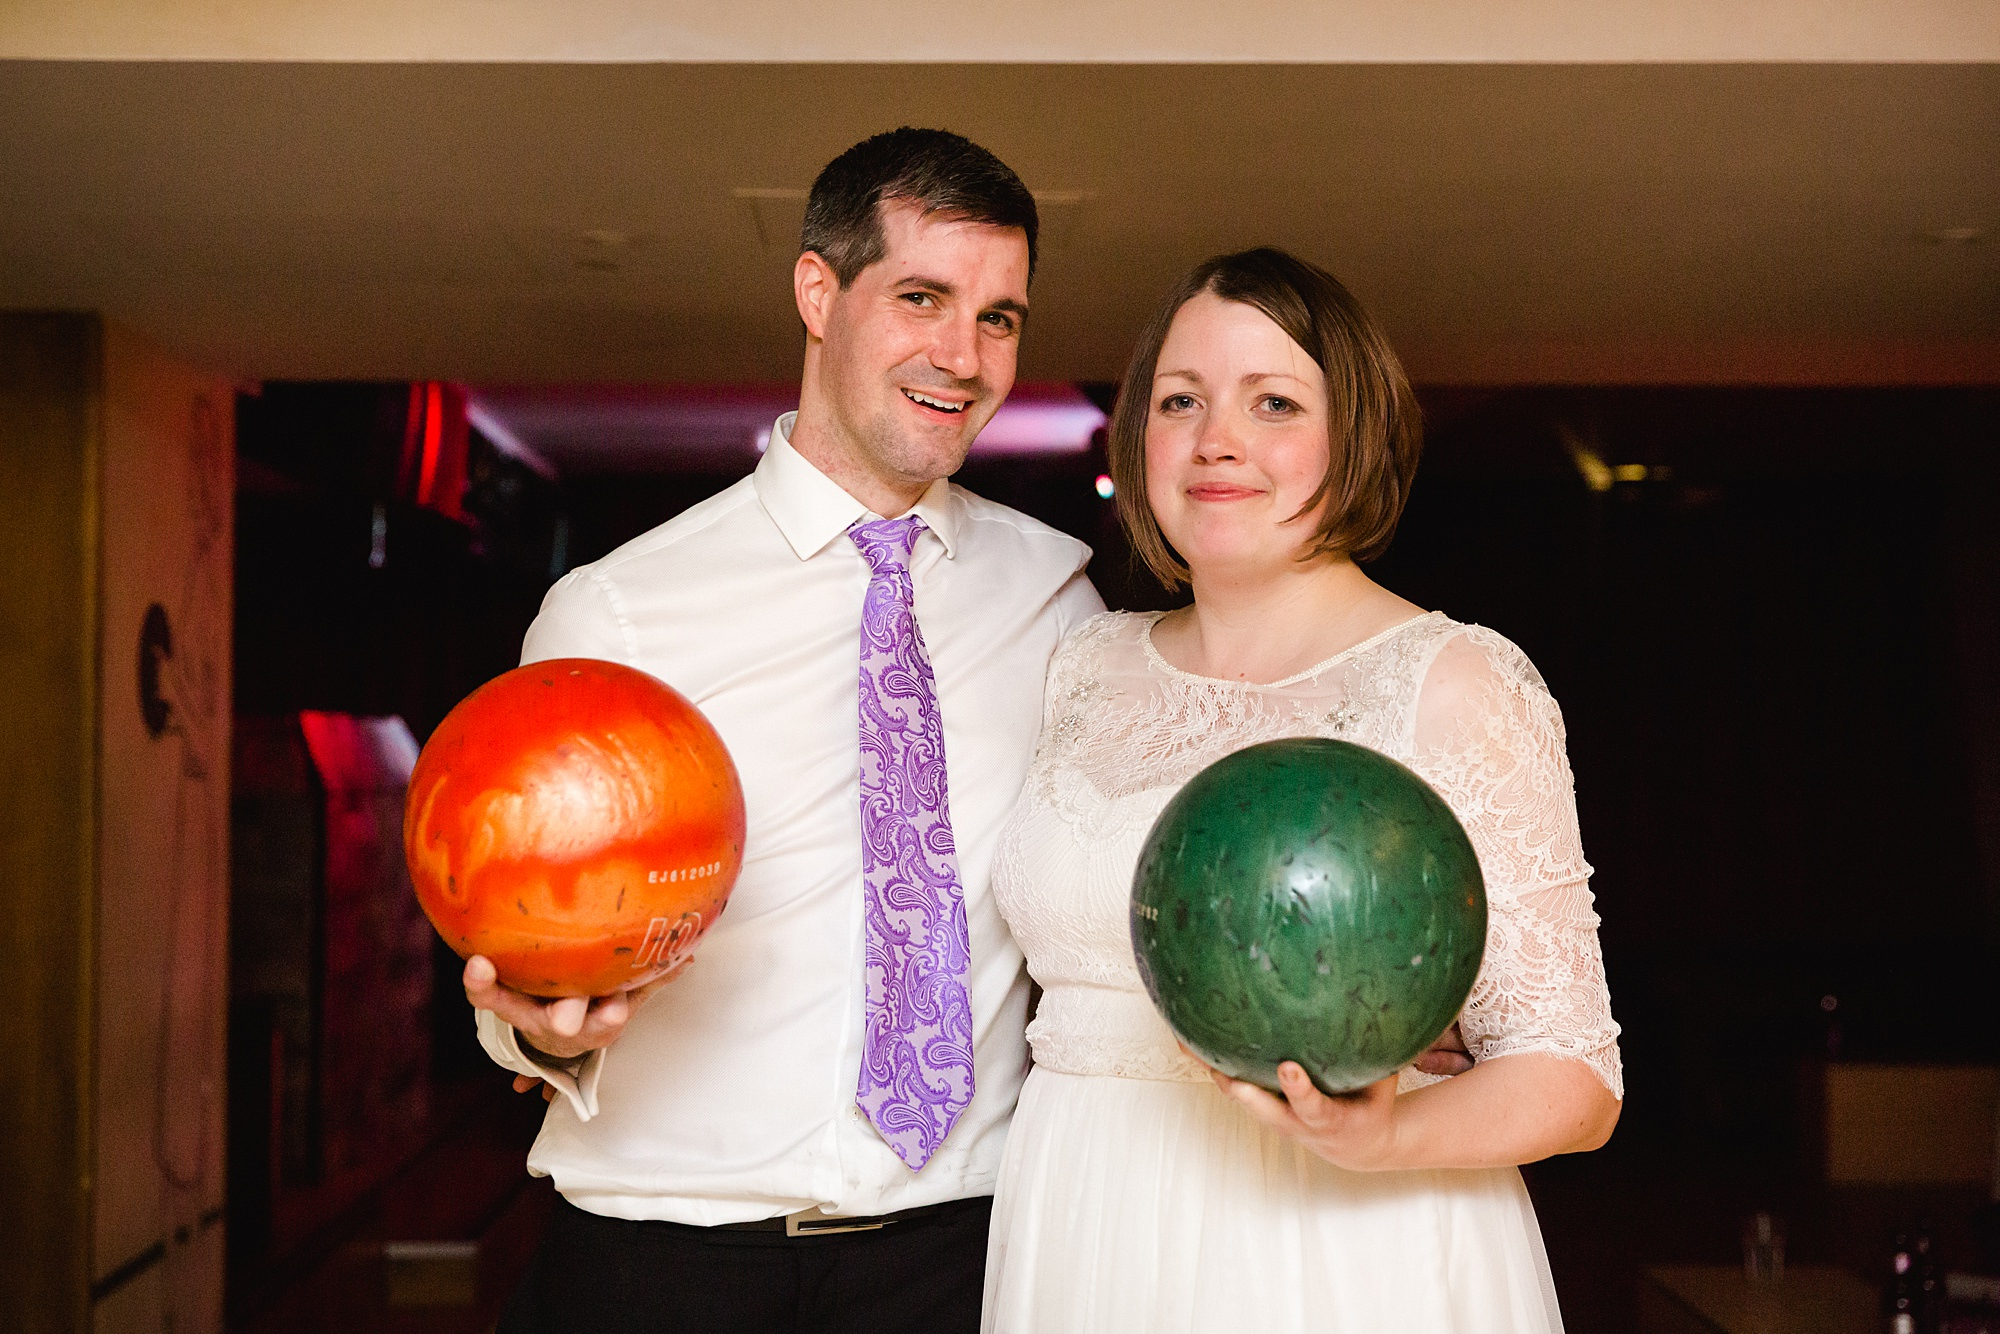 fun london wedding bowling bride and groom with bowling balls